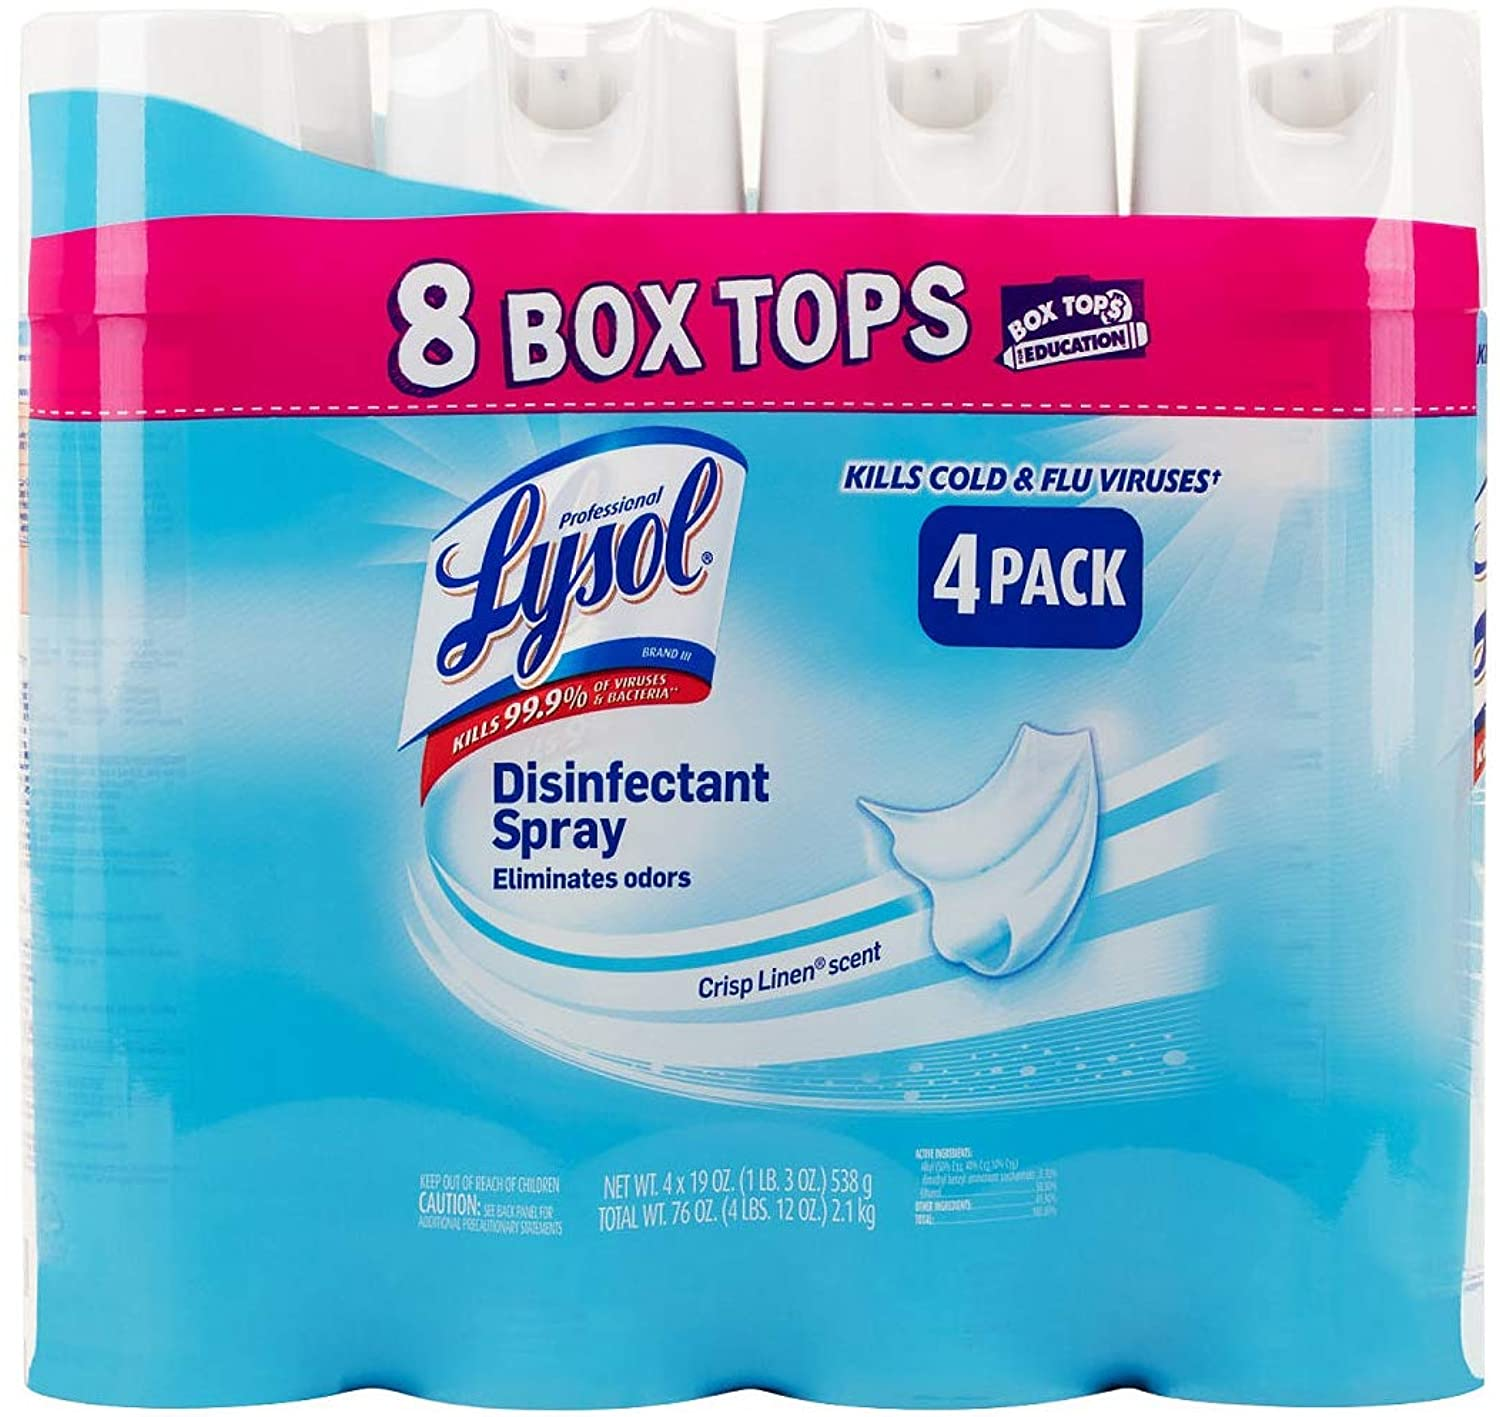 lysol disinfectant spray crisp linen scent 4 pack 19 oz